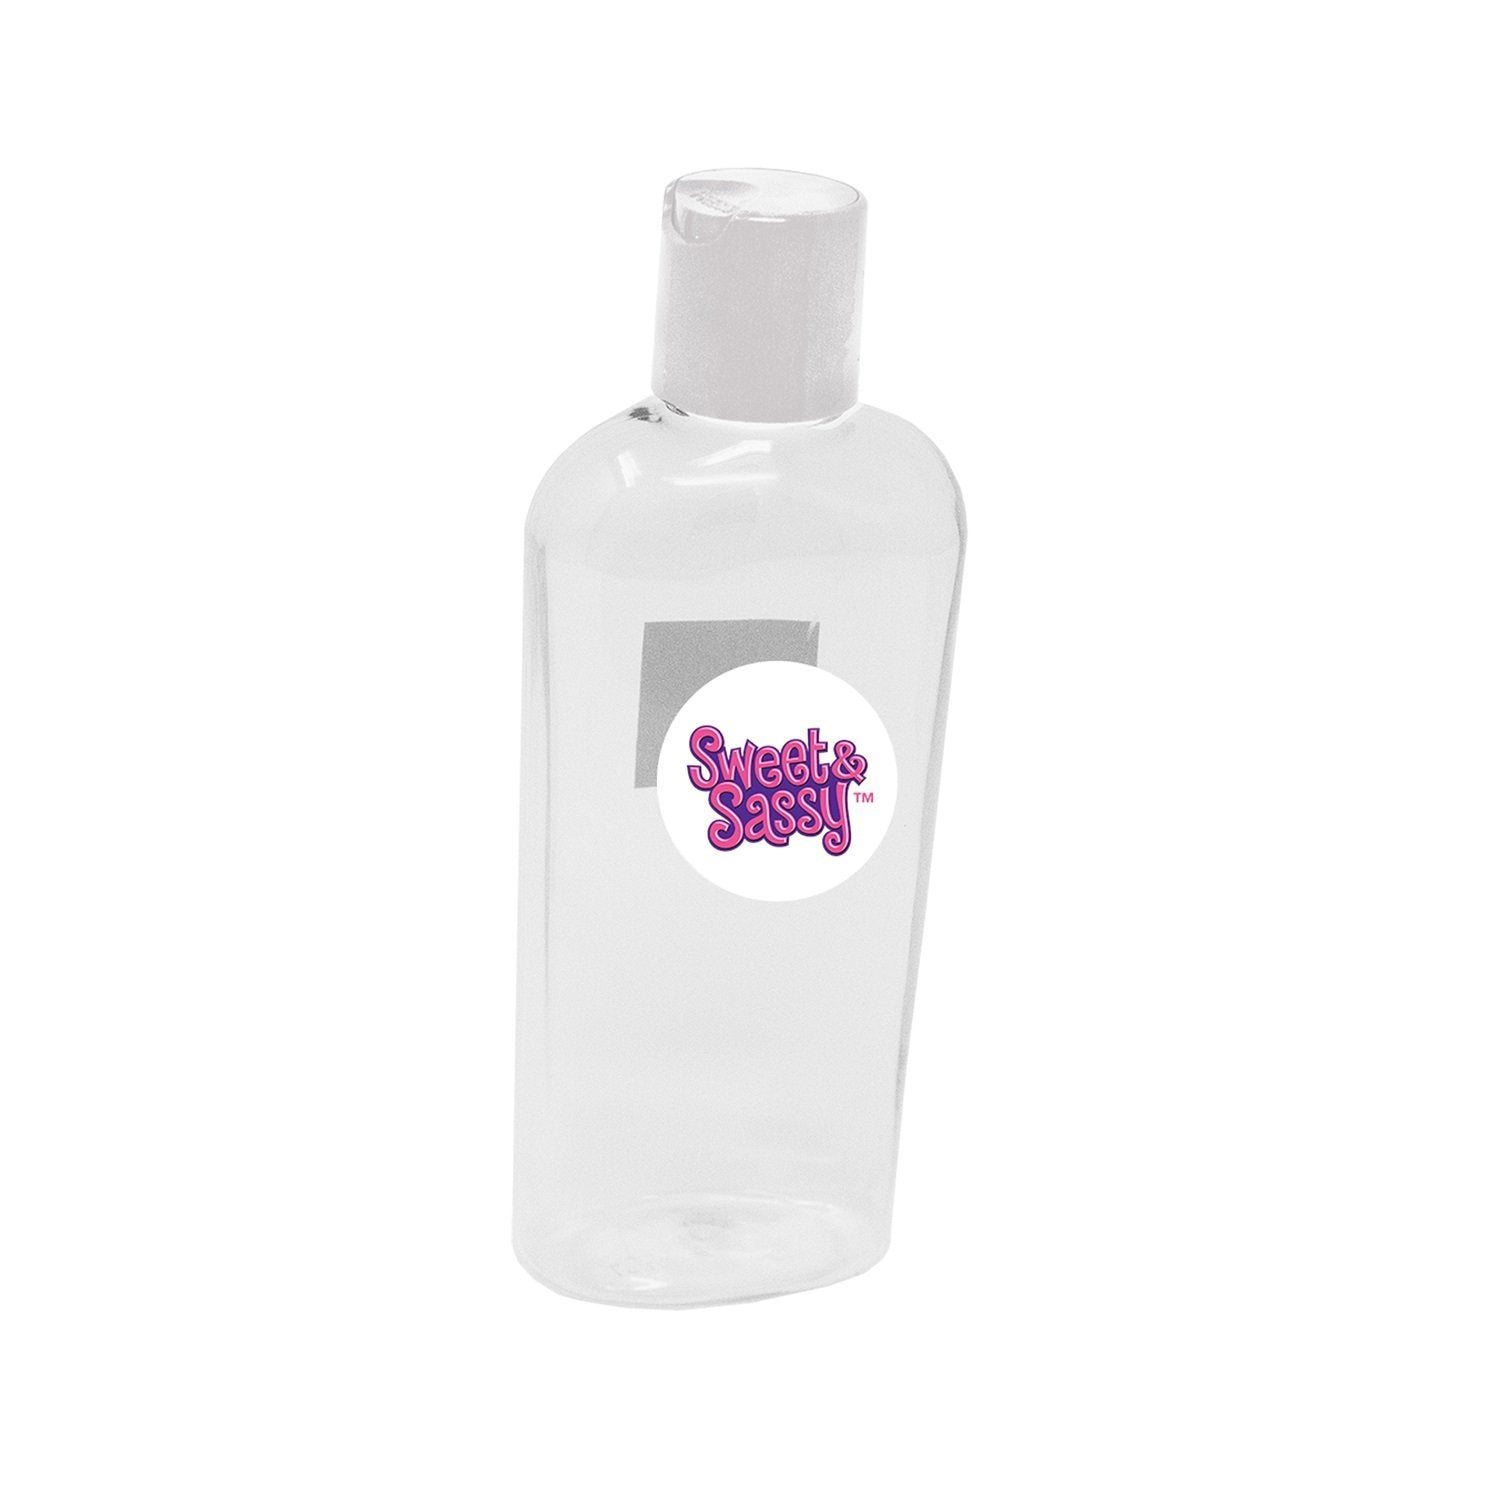 100 6-Ounce Lotion Bottles with Lids